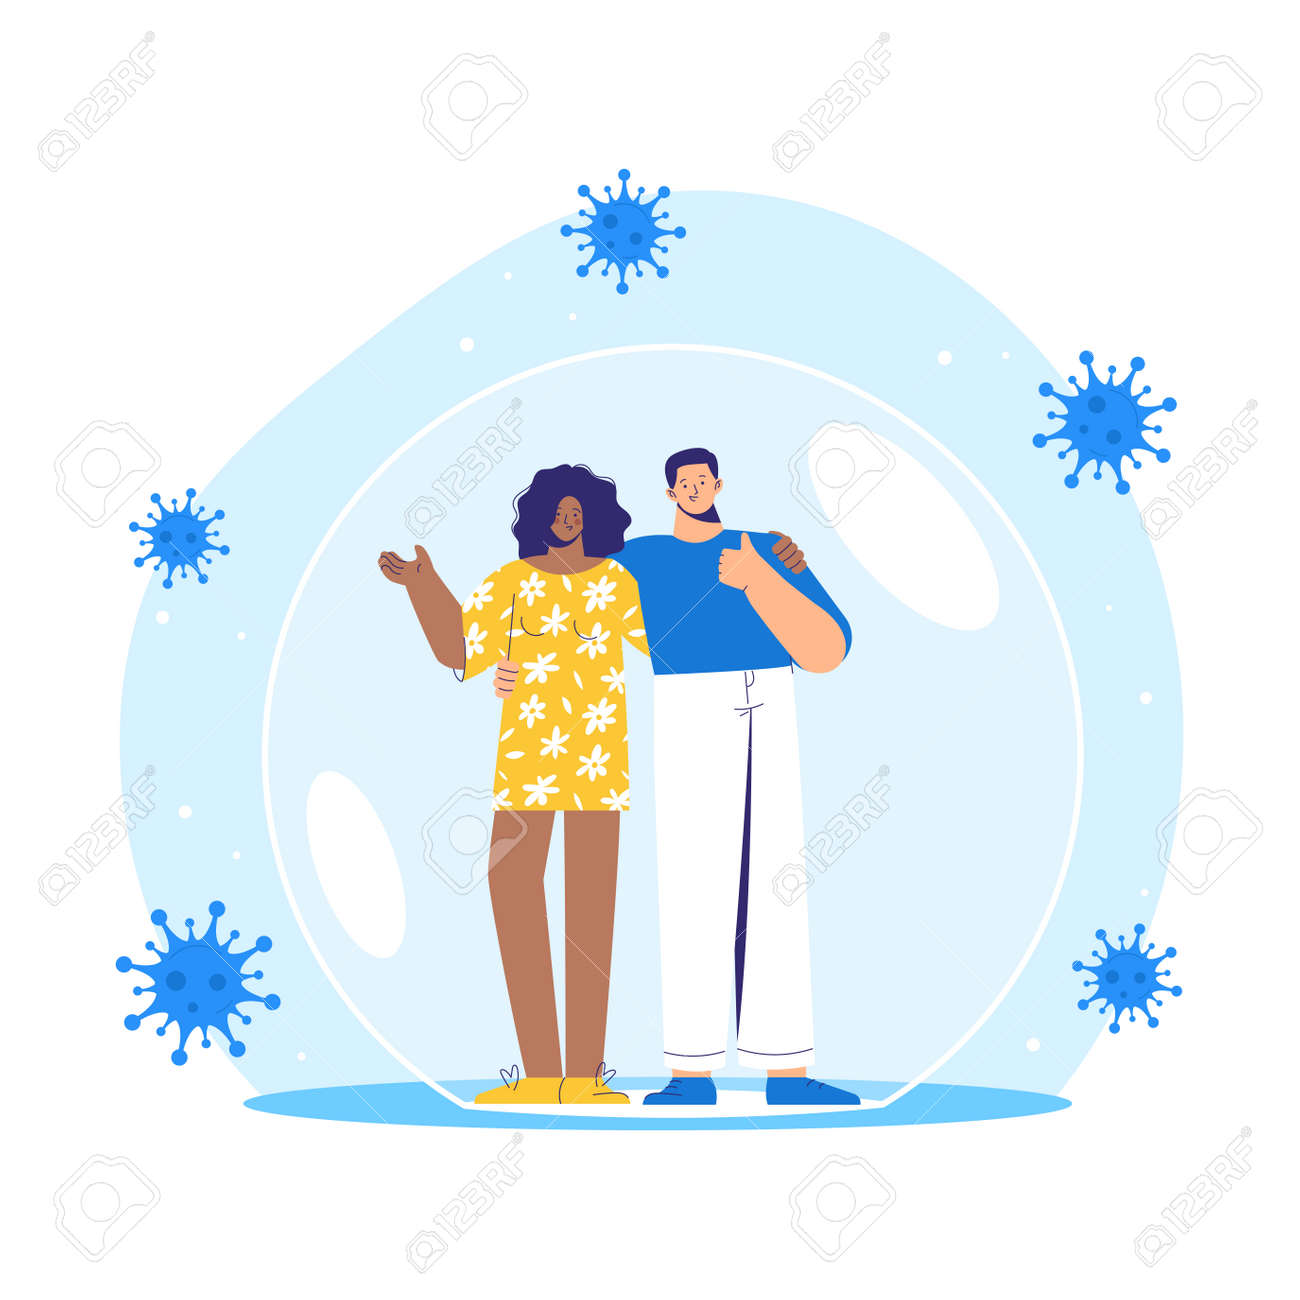 Man and woman stands inside a protective bubble. Adult characters are vaccinated and protected from coronavirus COVID-2019. - 171174829